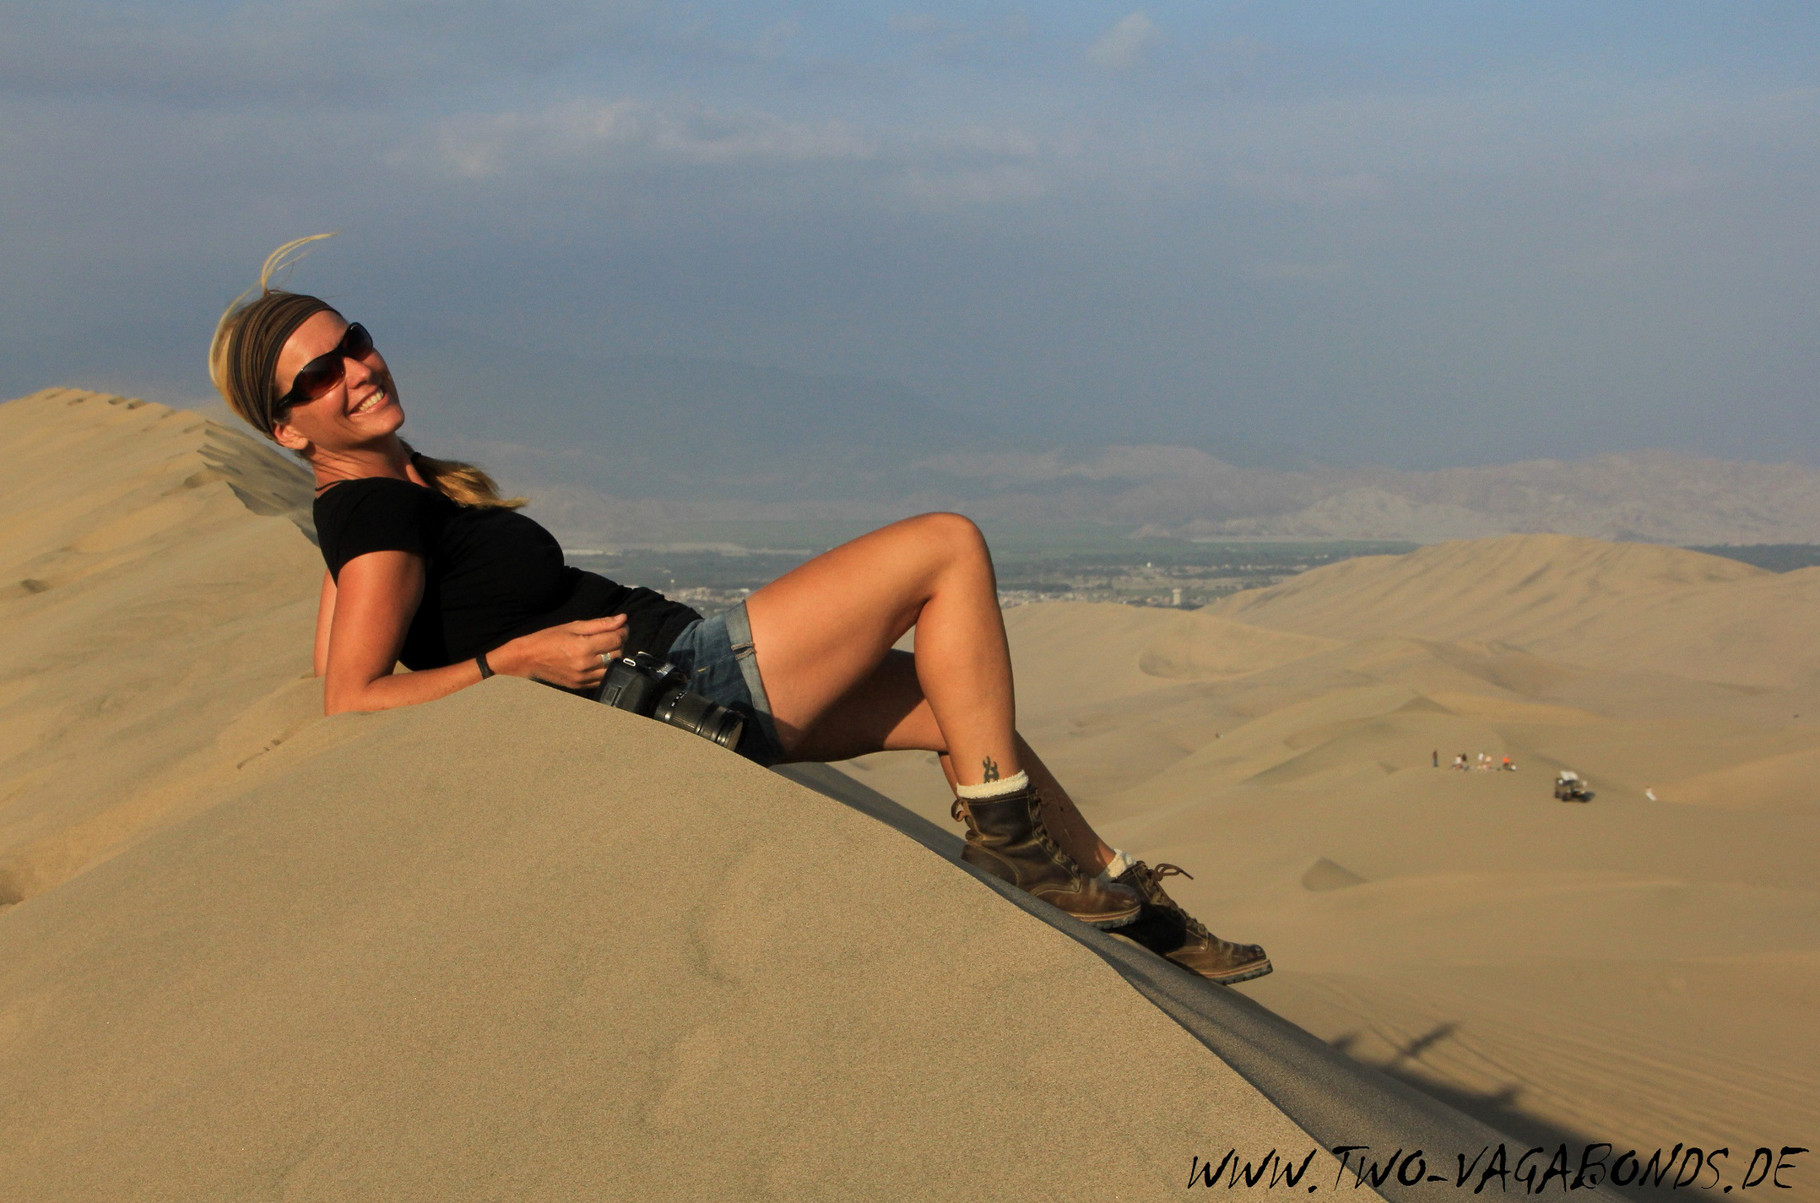 PERU 2015 - IN THE DESERT